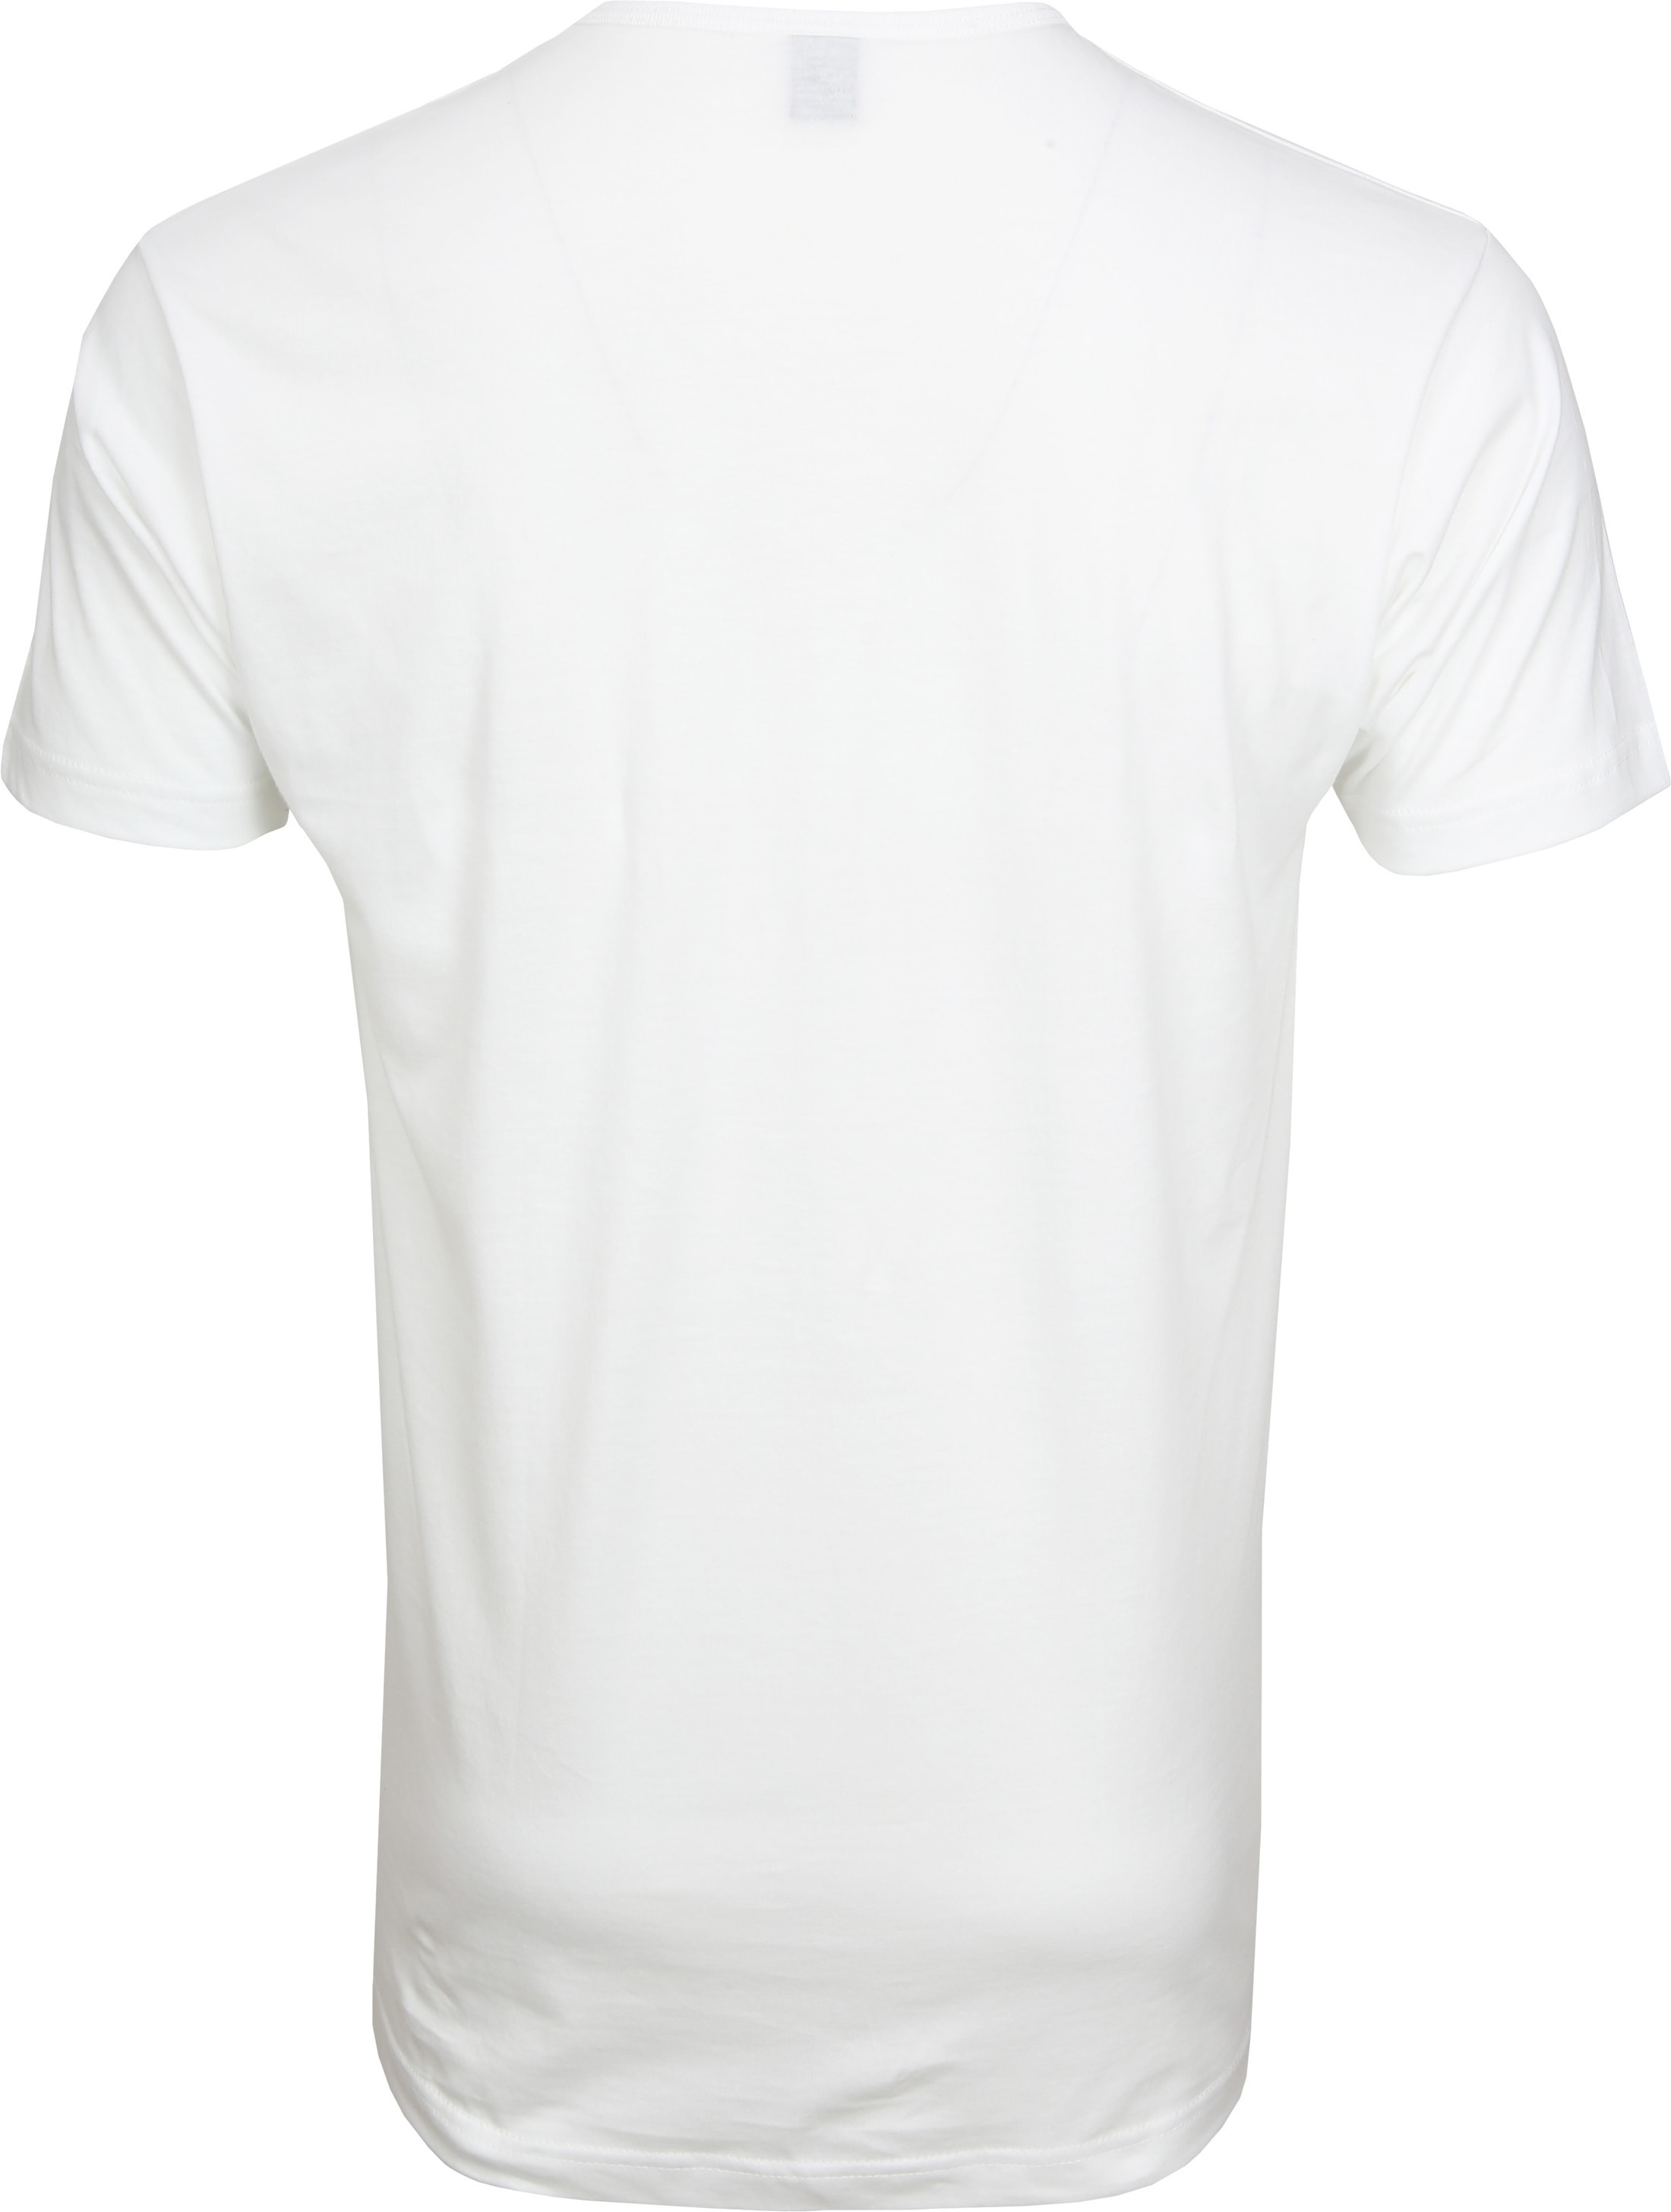 Alan Red Mike T-shirt Logo White foto 2